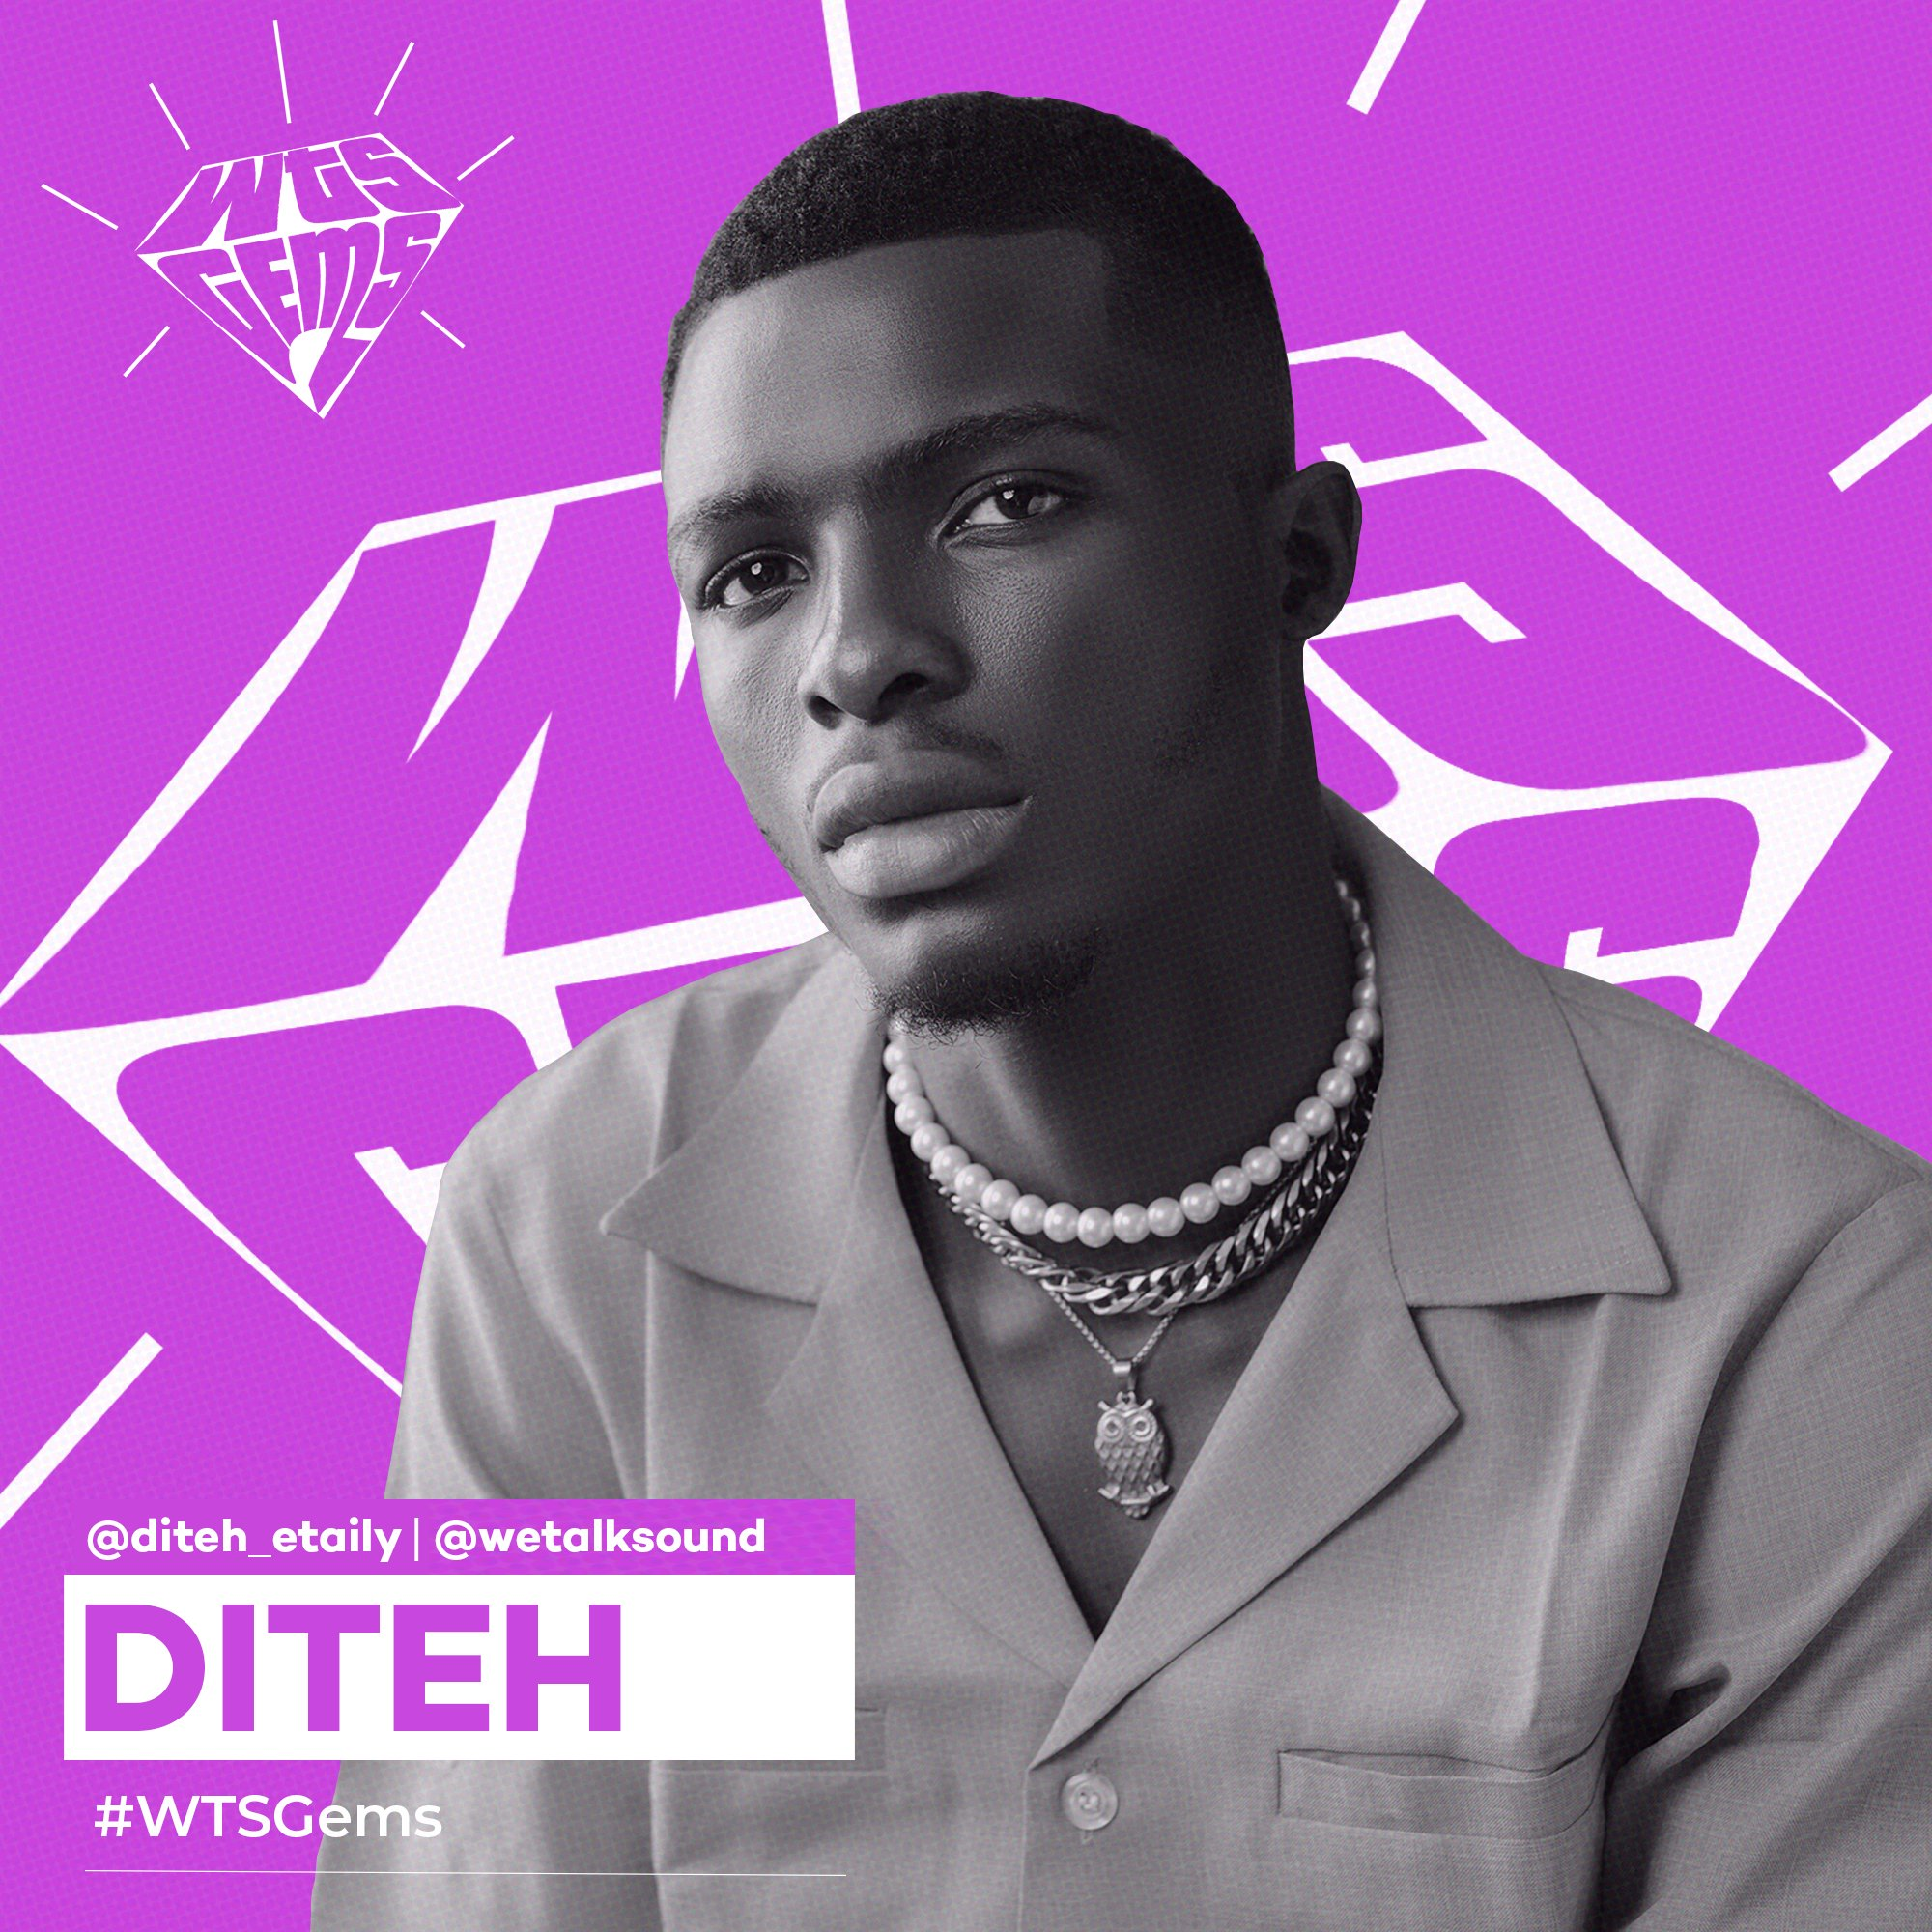 WTSGems: Meet Diteh- an artiste aiming for amazing collaborations